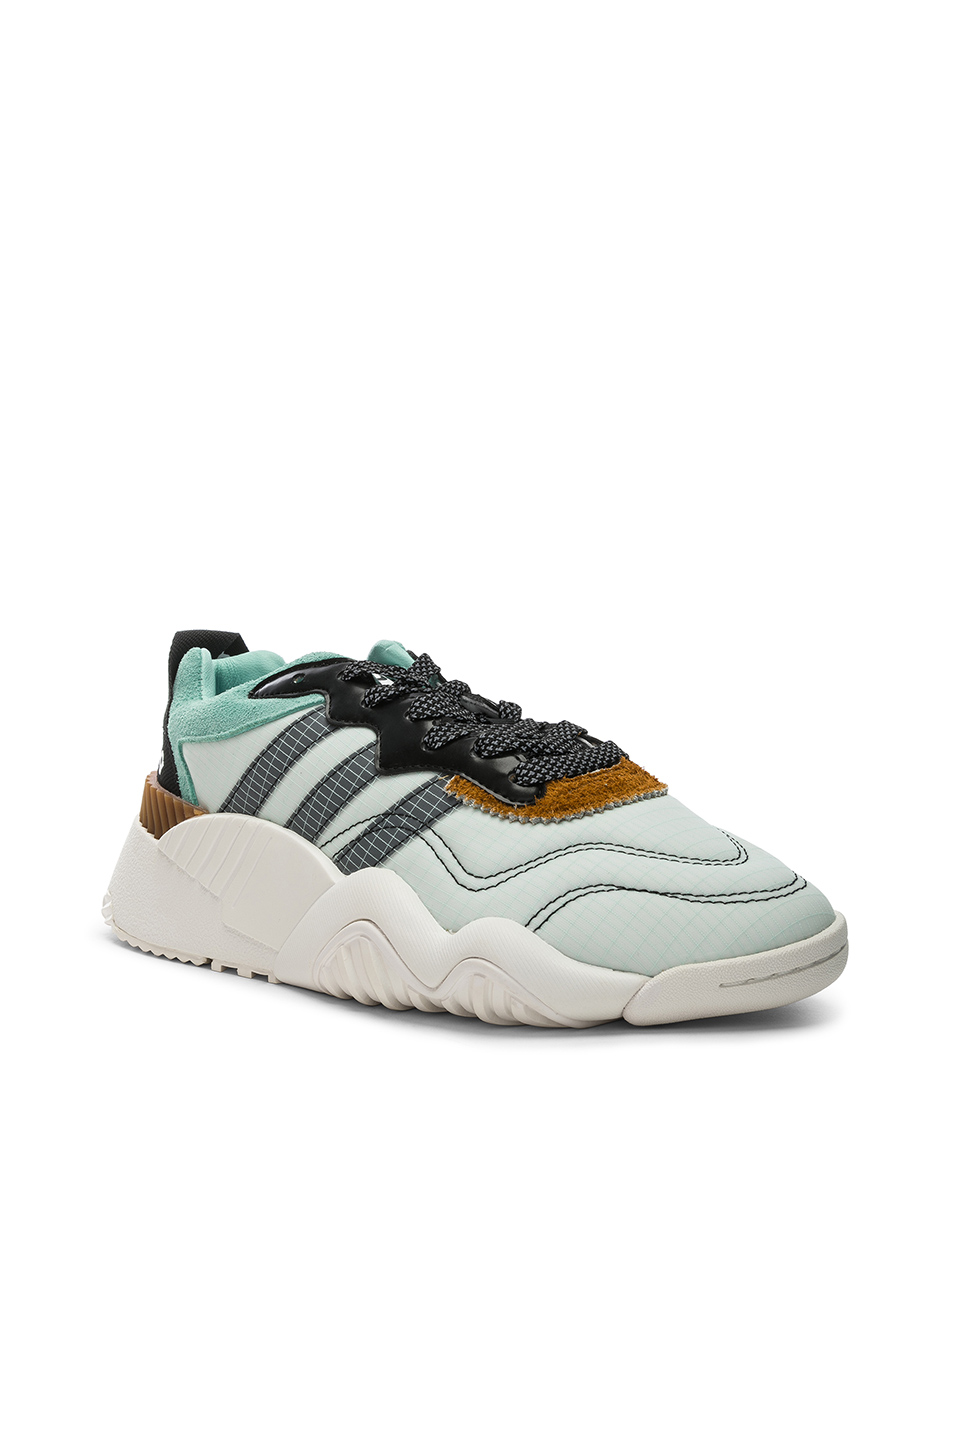 half off 7d098 199b6 Turnout Trainer Sneaker, adidas by Alexander Wang